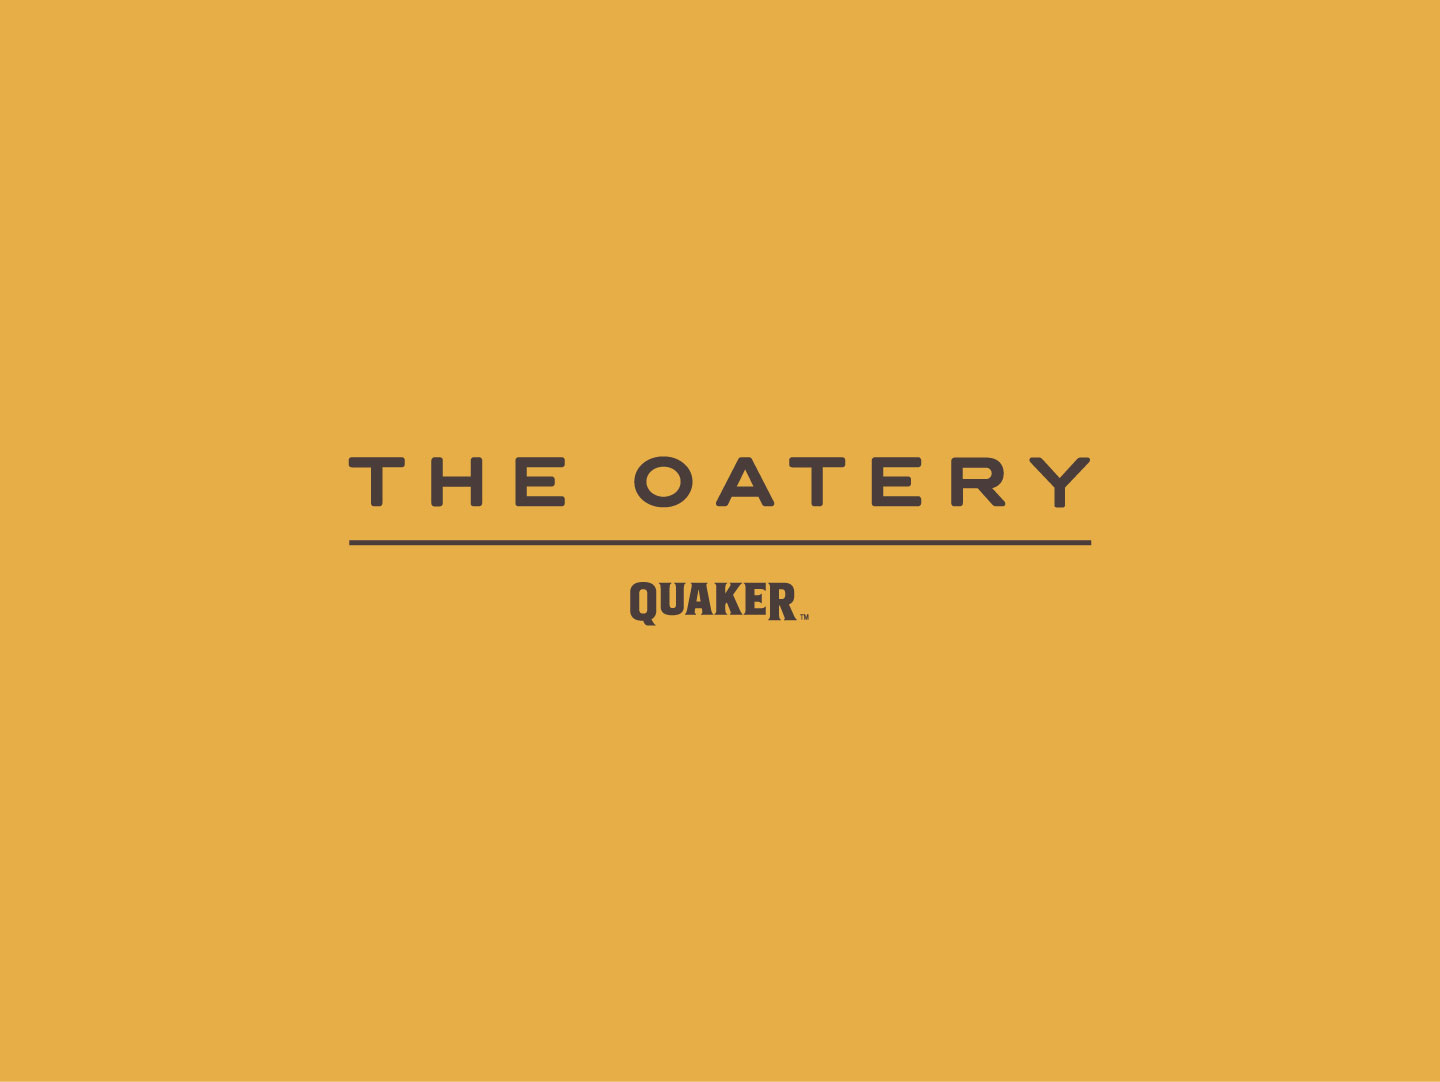 THE OATERY